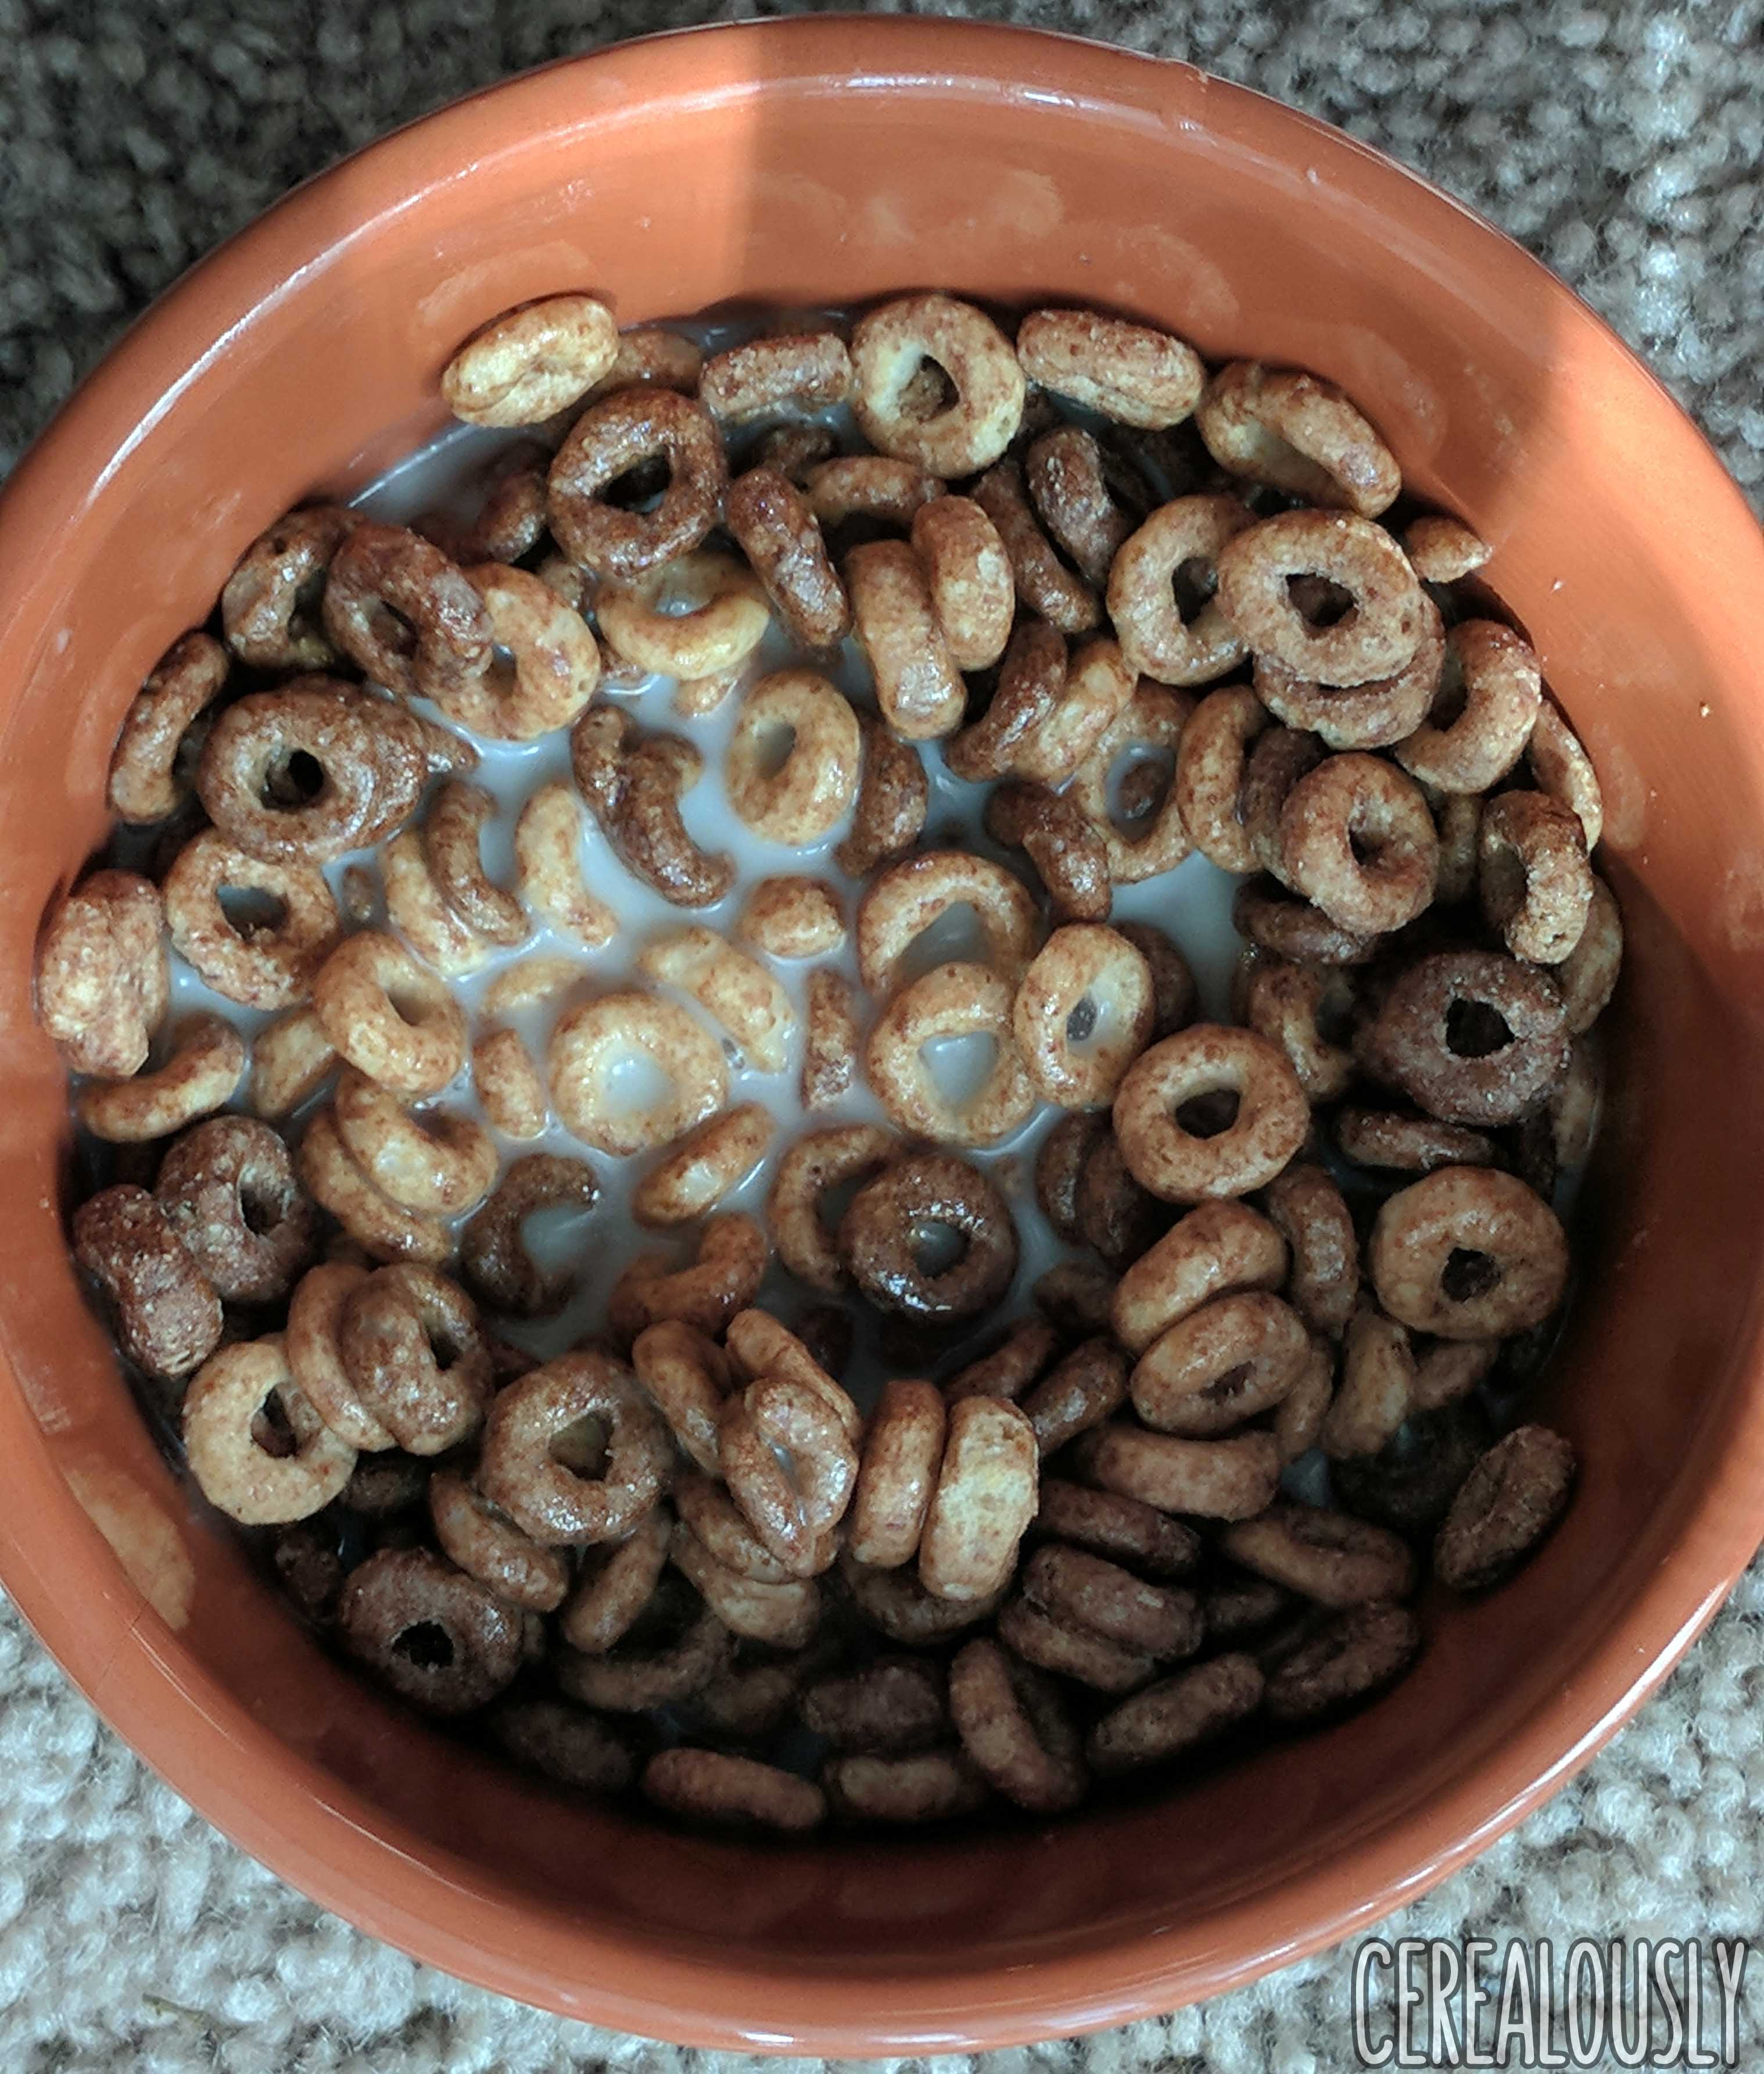 Review: Chocolate Peanut Butter Cheerios Cereal From